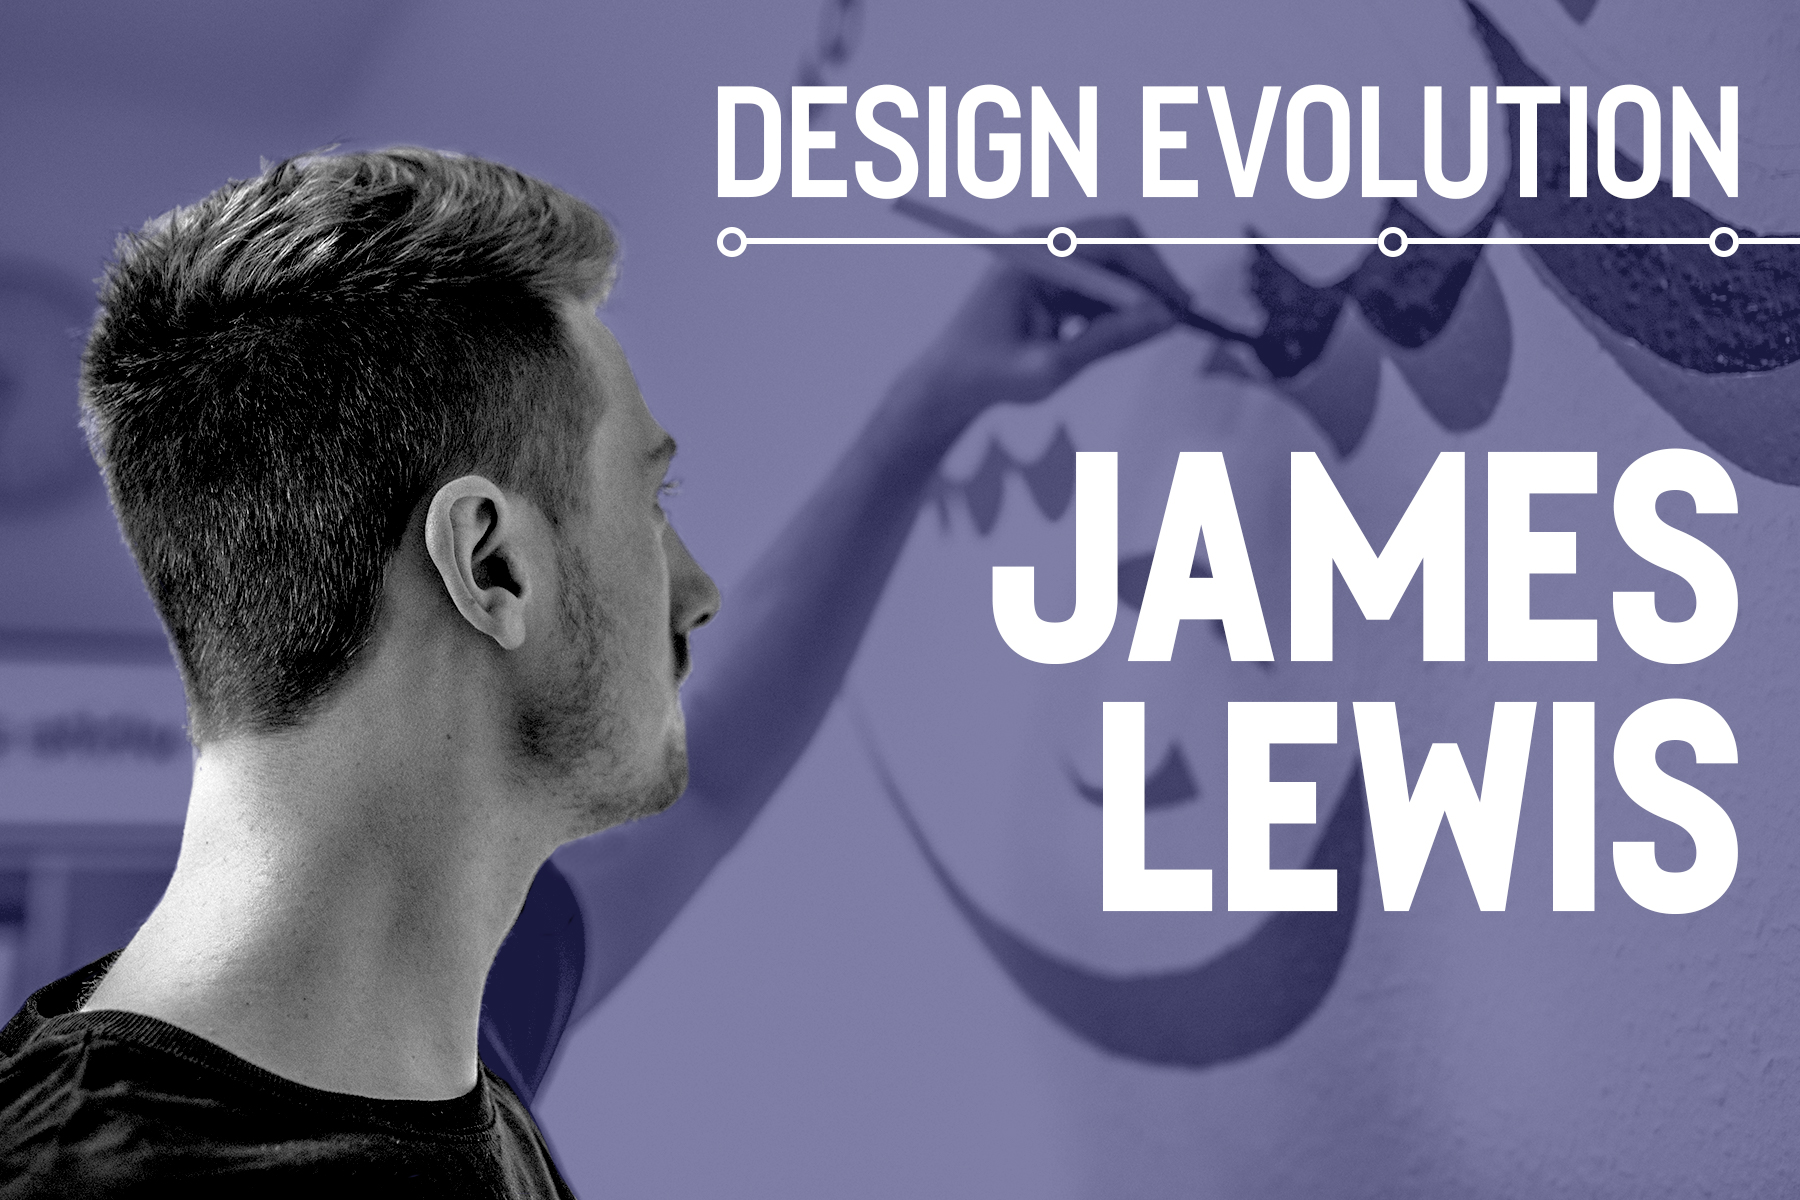 https://www.designcuts.com/wp-content/uploads/2019/07/JamesLewis.jpg